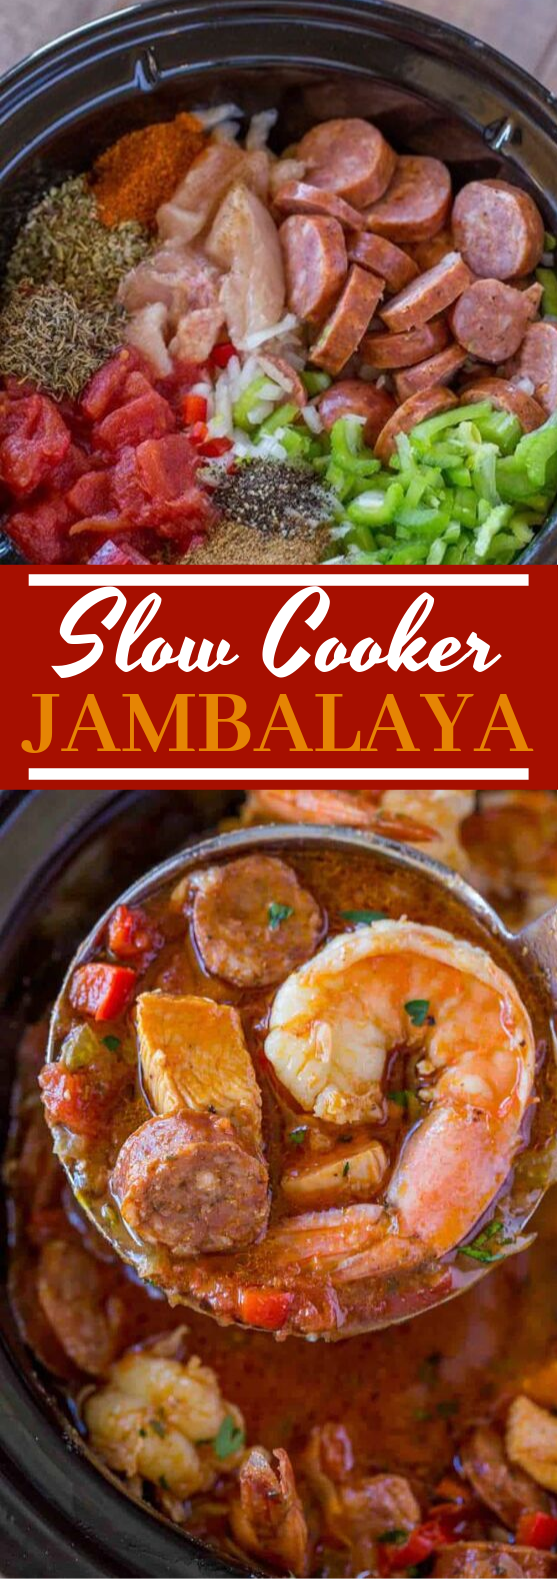 Slow Cooker Jambalaya #dinner #slowcooker